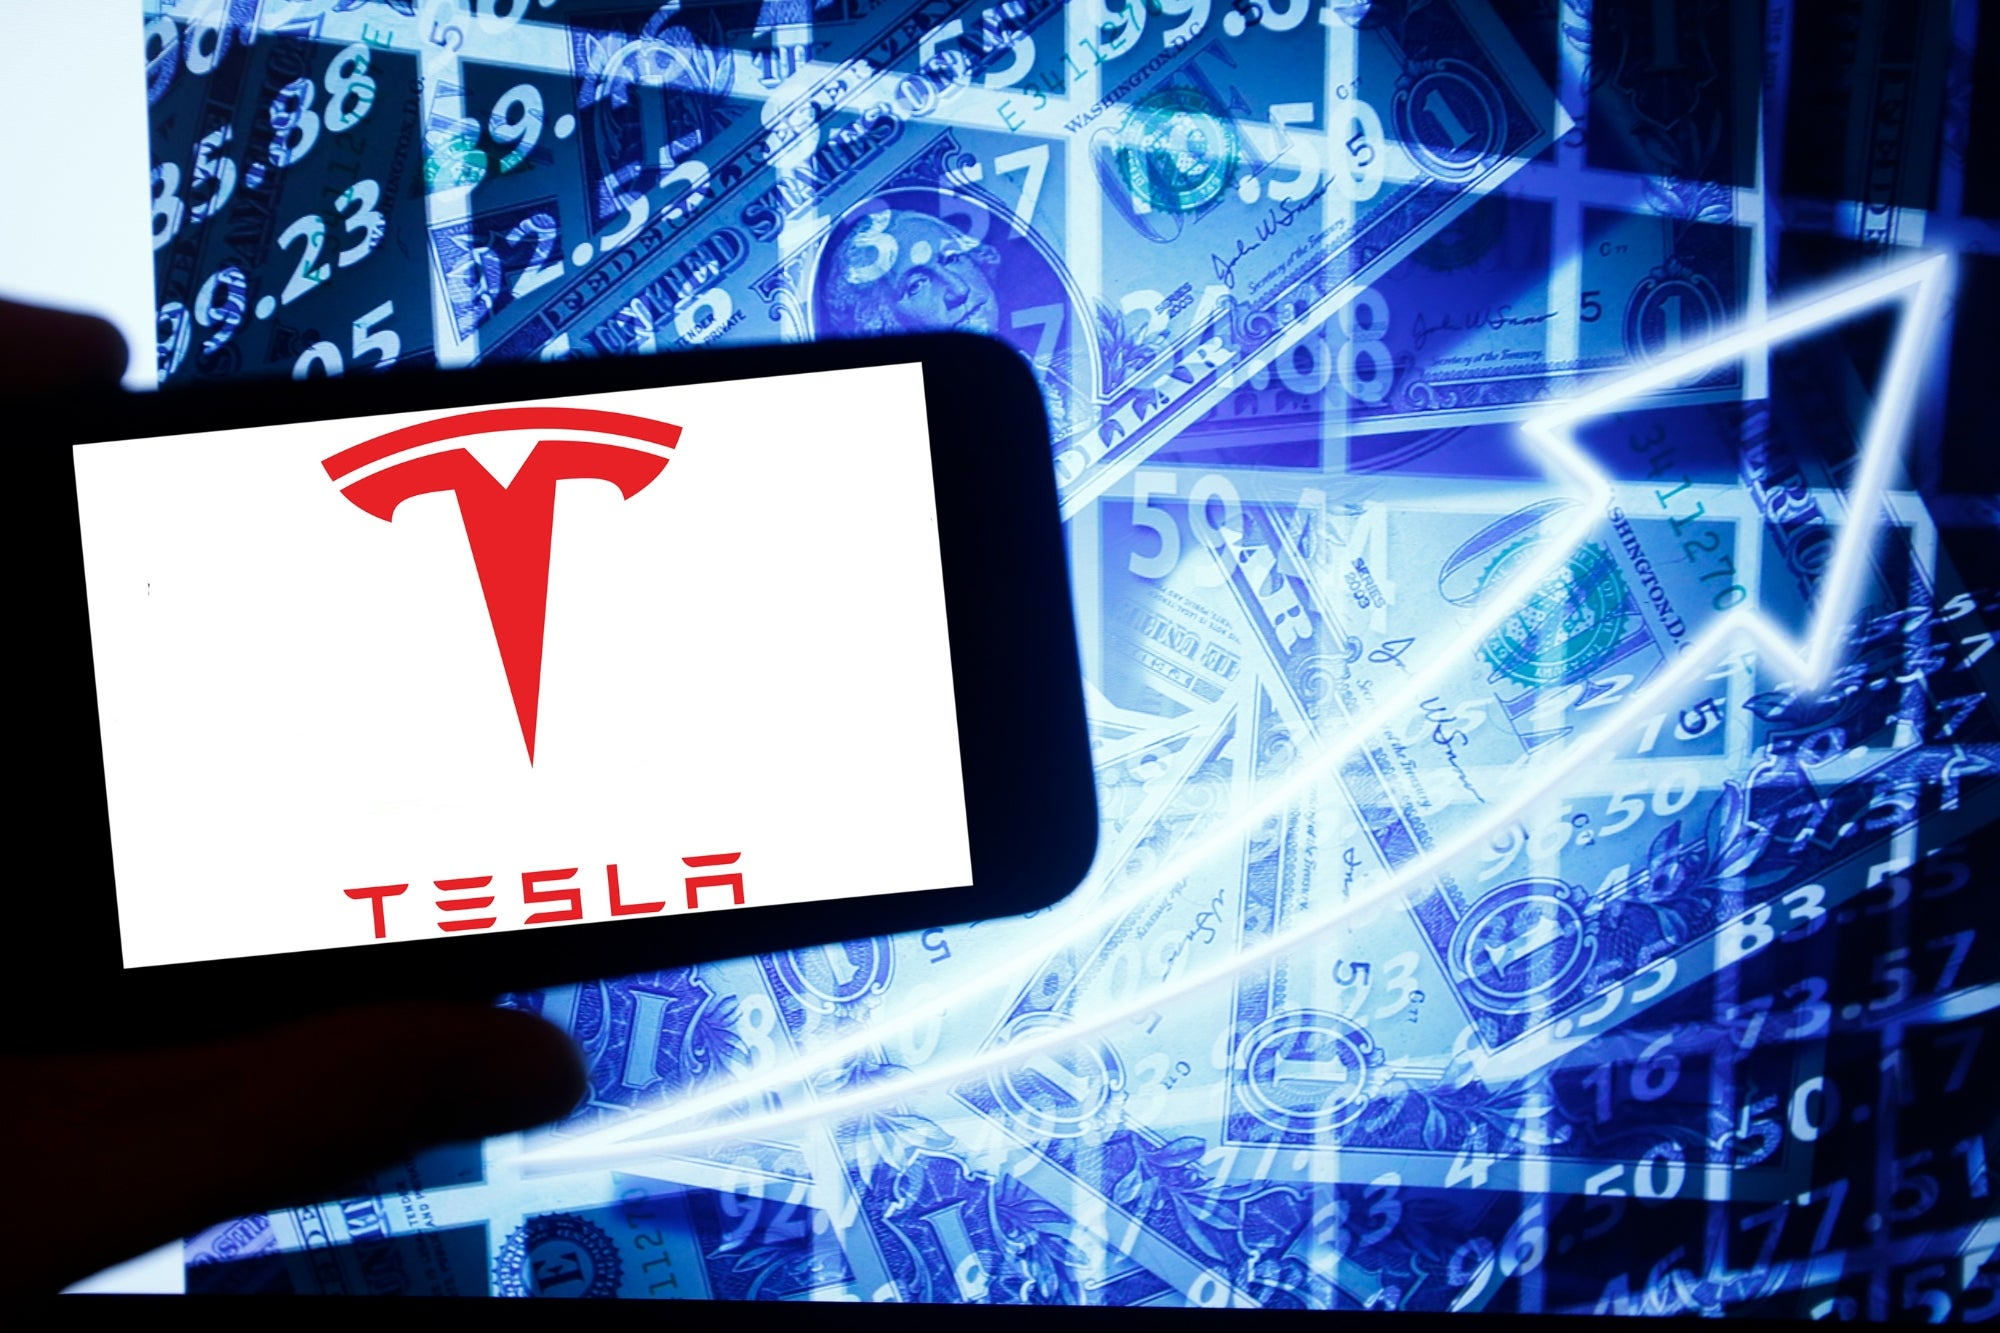 Tesla Stock Is Up 20 Percent. Will the Rally Continue?